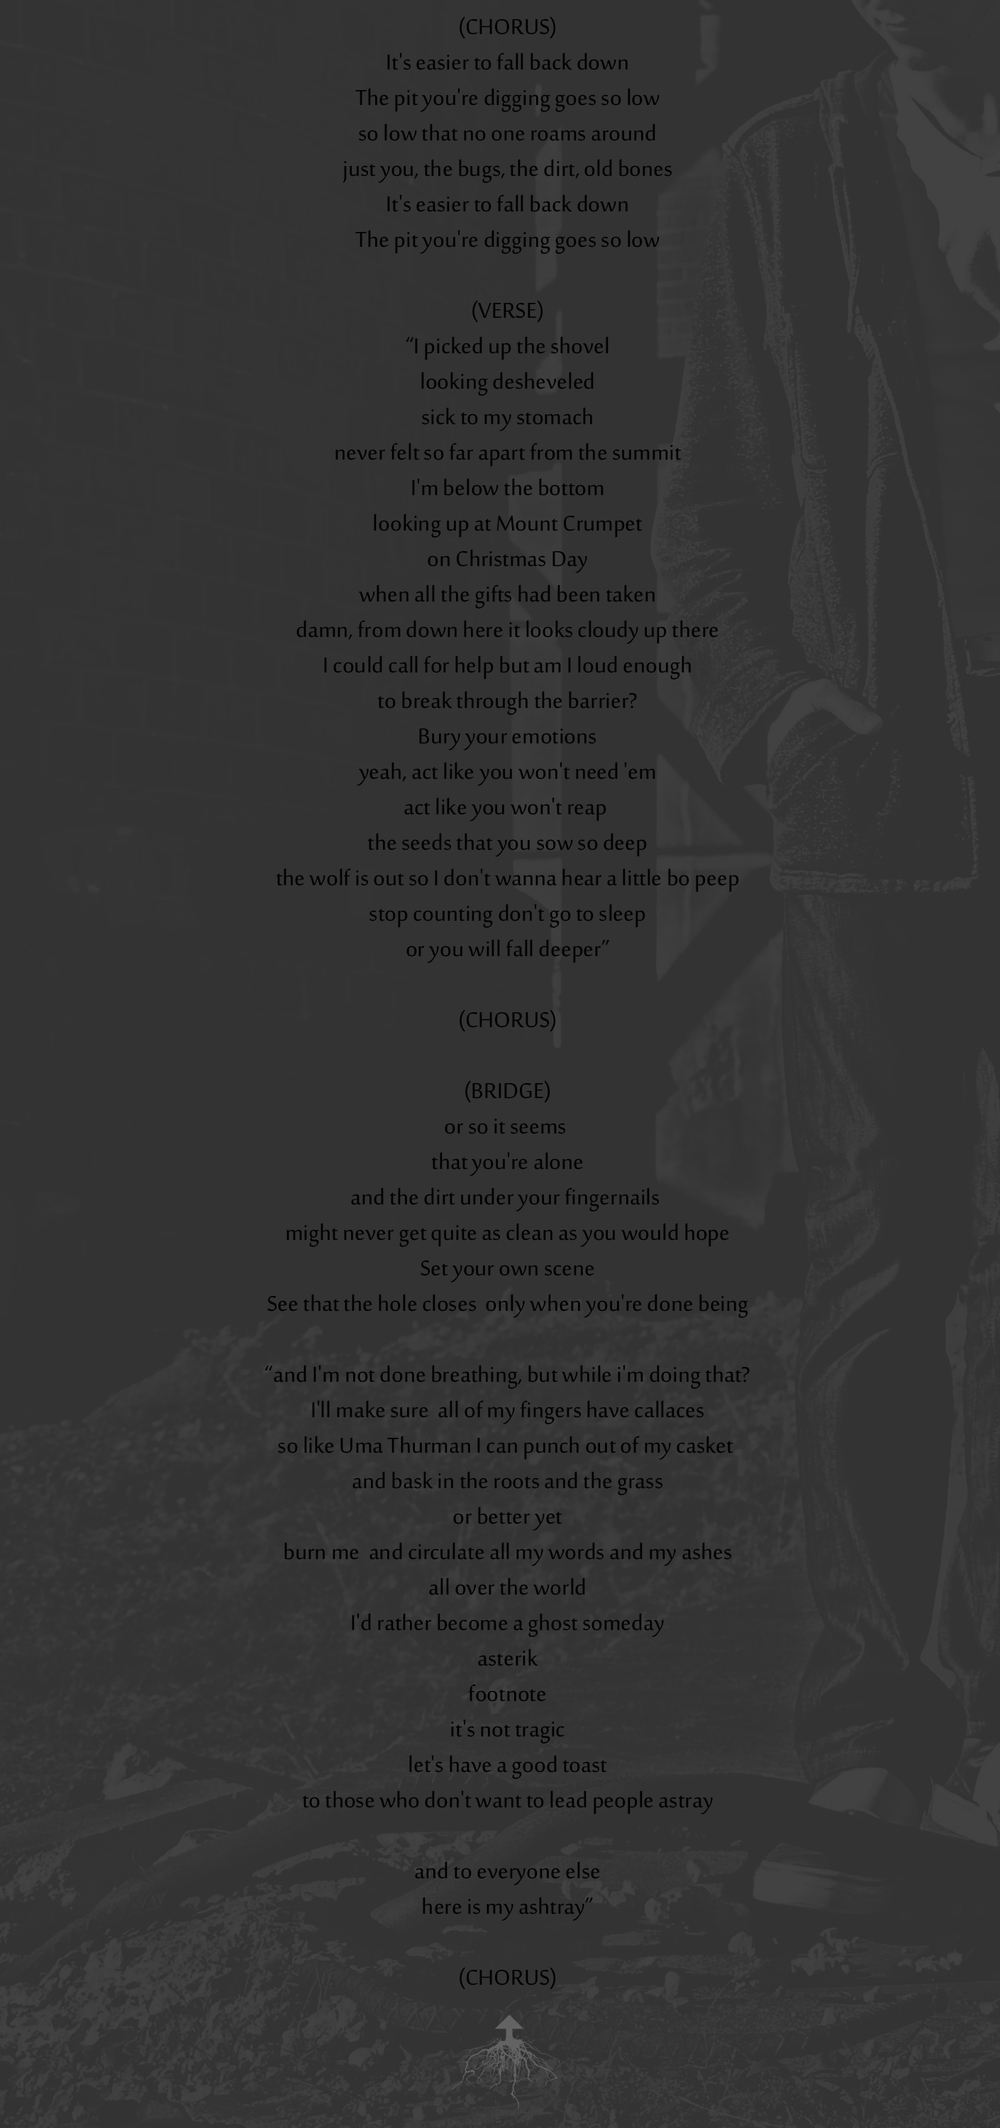 09 Back Down lyrics